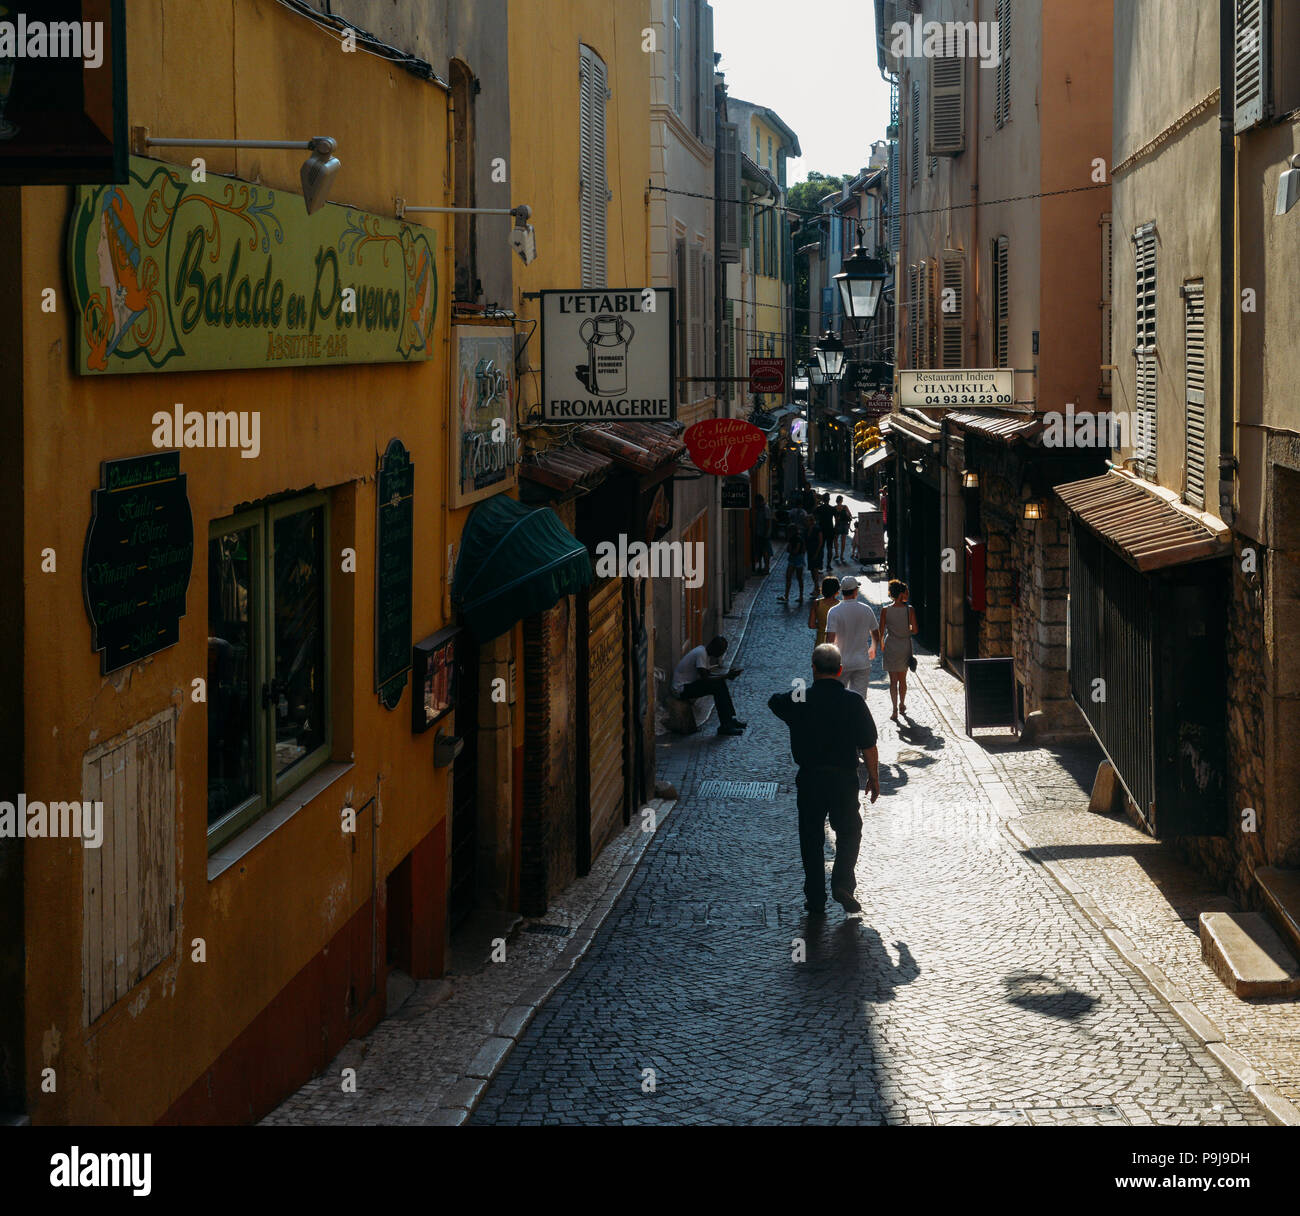 Narrow tourist street in Antibes, France. Antibes is a popular seaside town in the heart of the Cote d'Azur Stock Photo